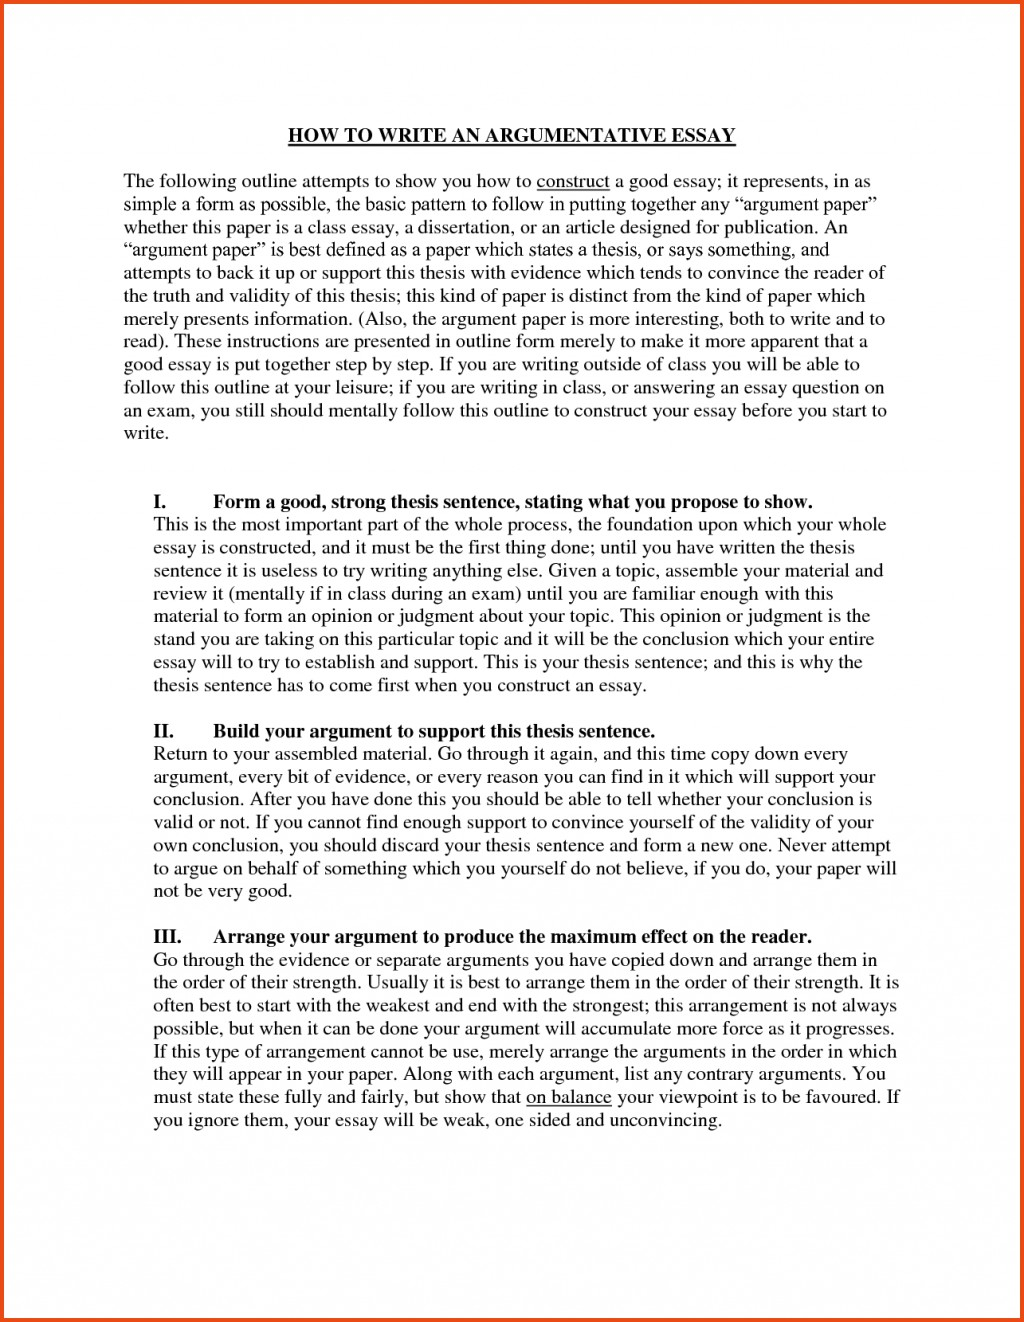 009 How To Start An About Me Essay Help Check Rush Examples Do I Good Way L Expository Academic Application Writing Argumentative Informative Analysis Conclusion Observation Of Dreaded Introduction Write Yourself Example Pdf Large